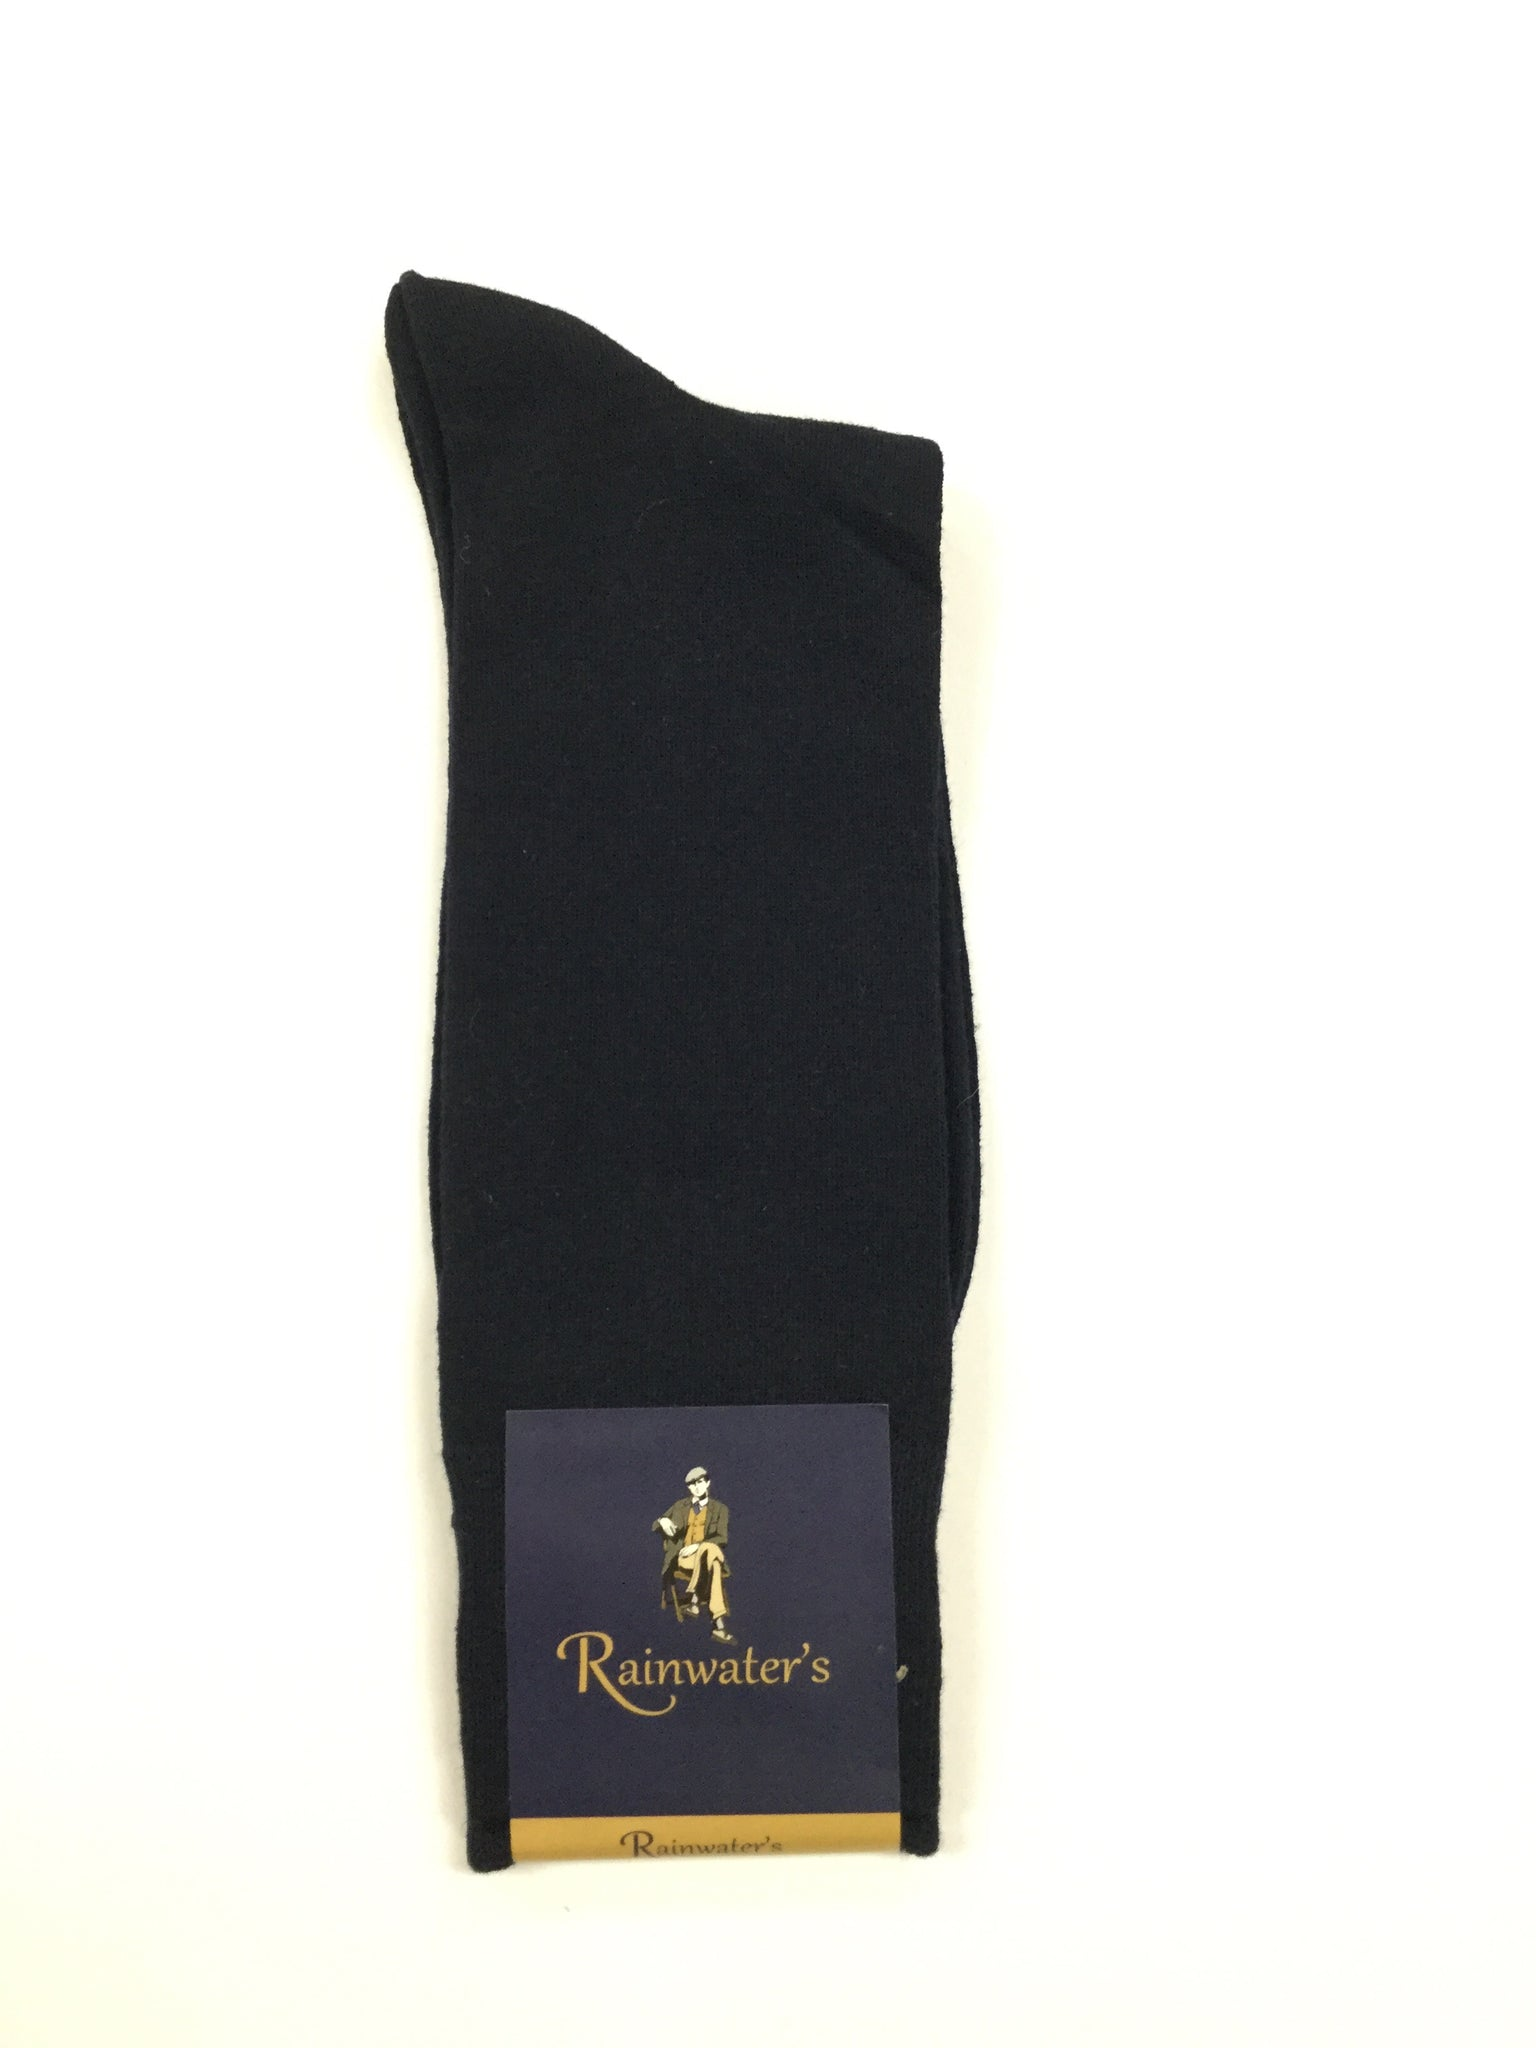 Rainwater's Basic Solid Dress Sock - Rainwater's Men's Clothing and Tuxedo Rental